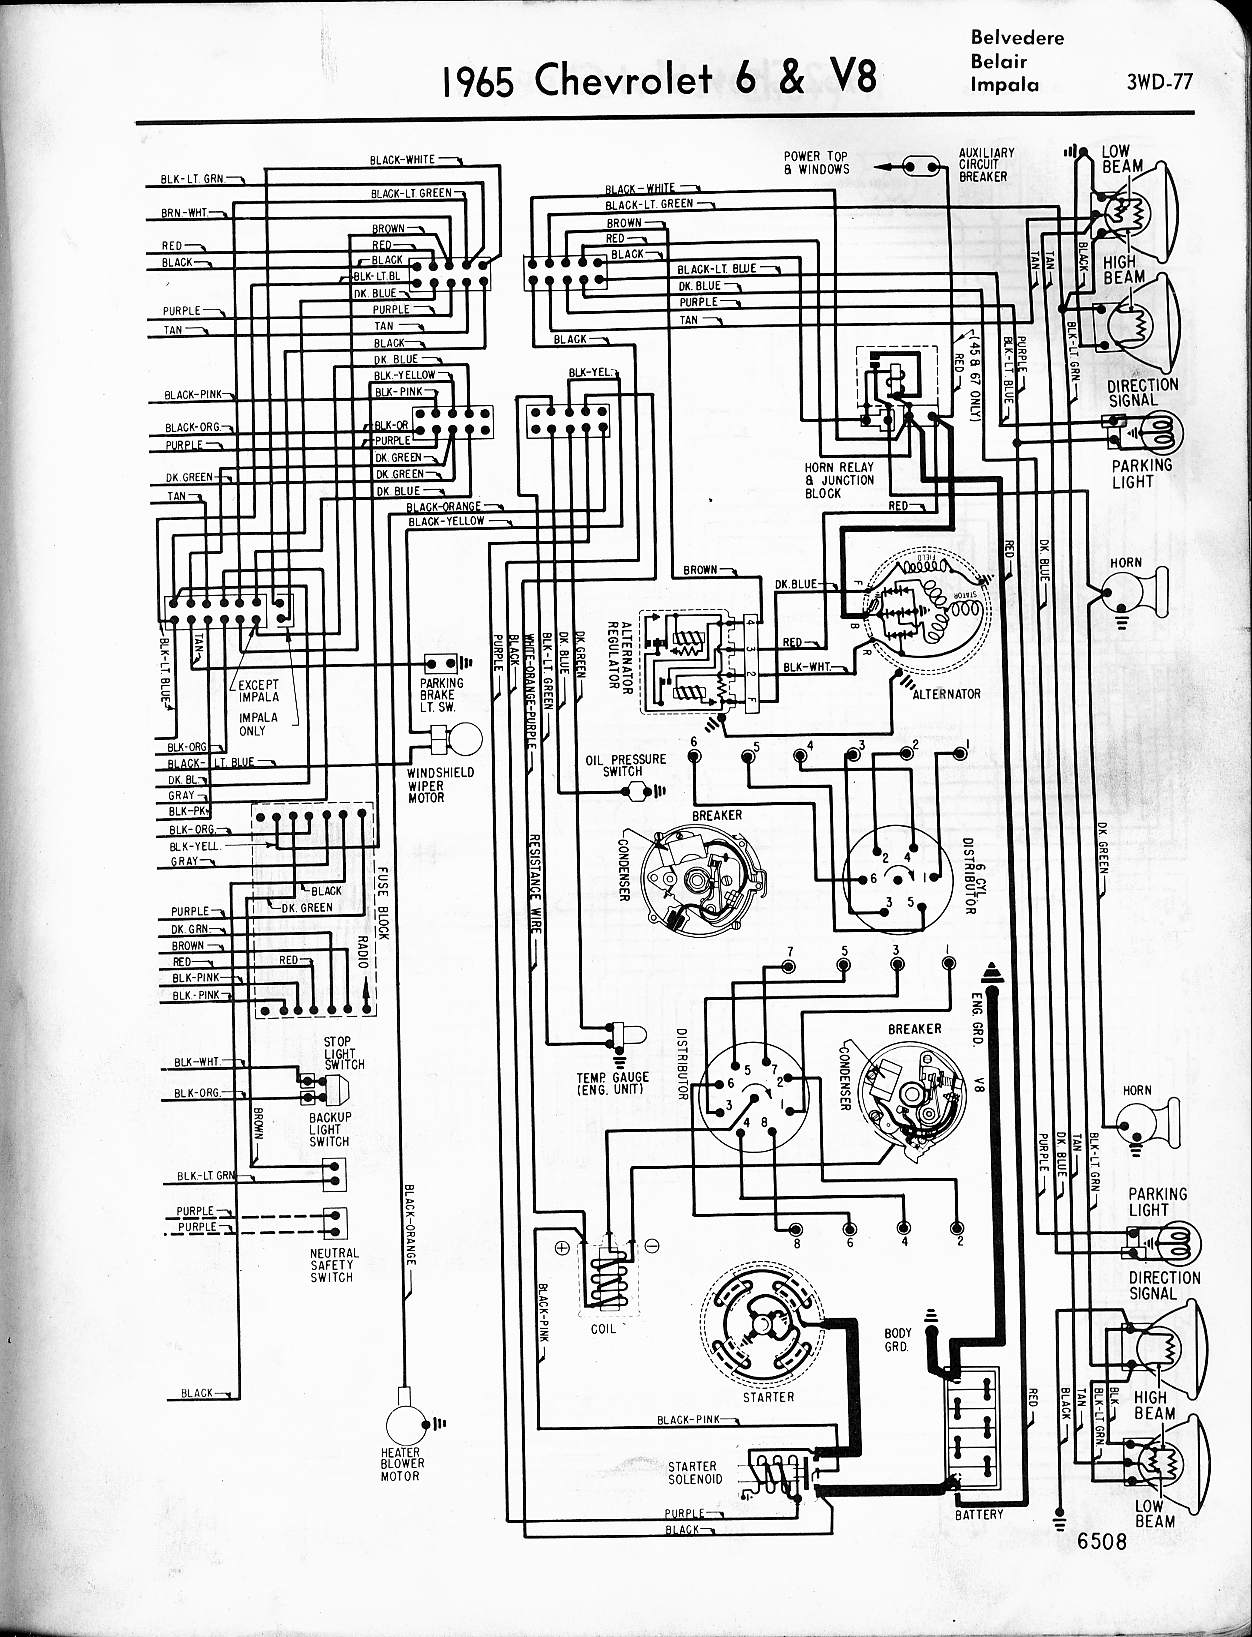 Chevy Diagrams Wiring Diagram For Pickups 1965 Impalla Figure A B